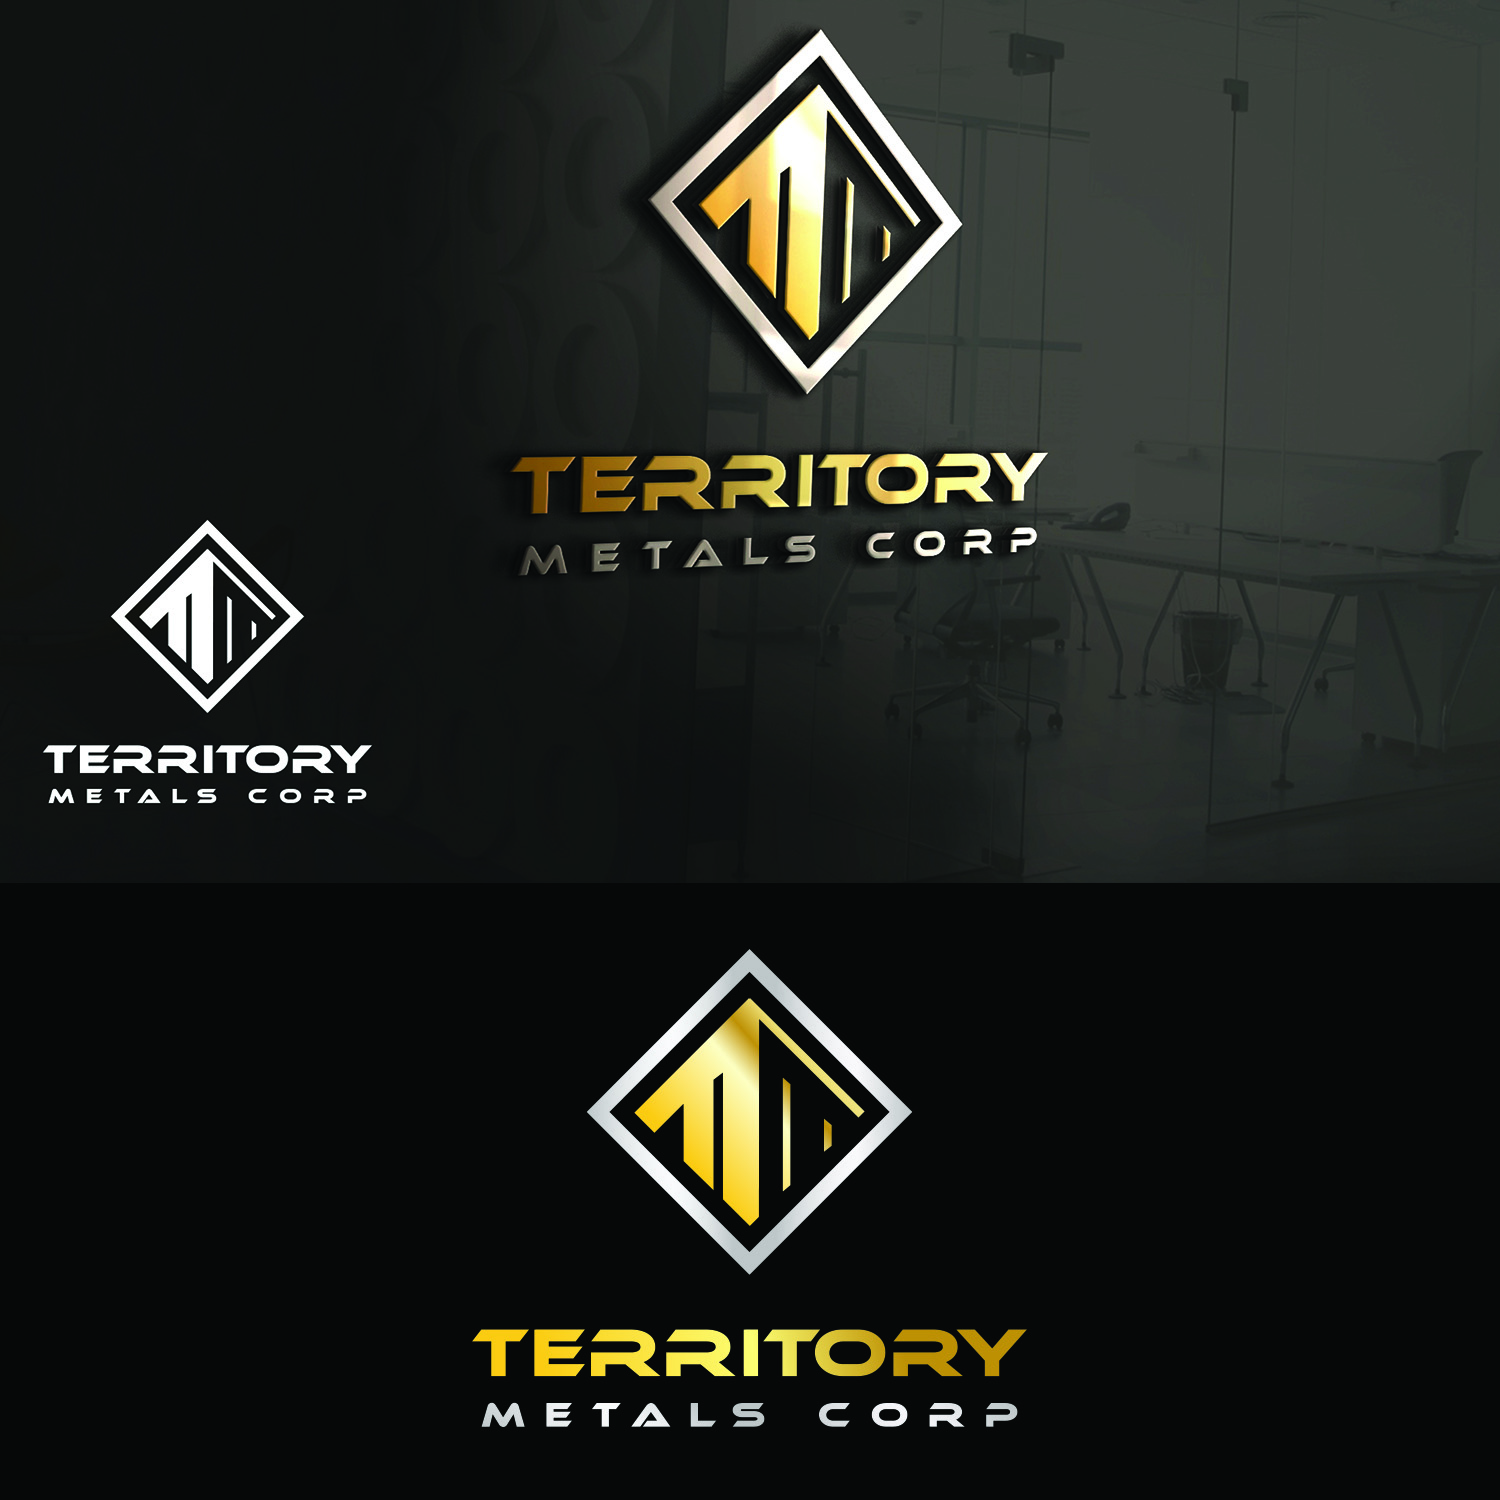 Logo Design by Umair ahmed Iqbal - Entry No. 112 in the Logo Design Contest Unique Logo Design Wanted for Territory Metals Corp..